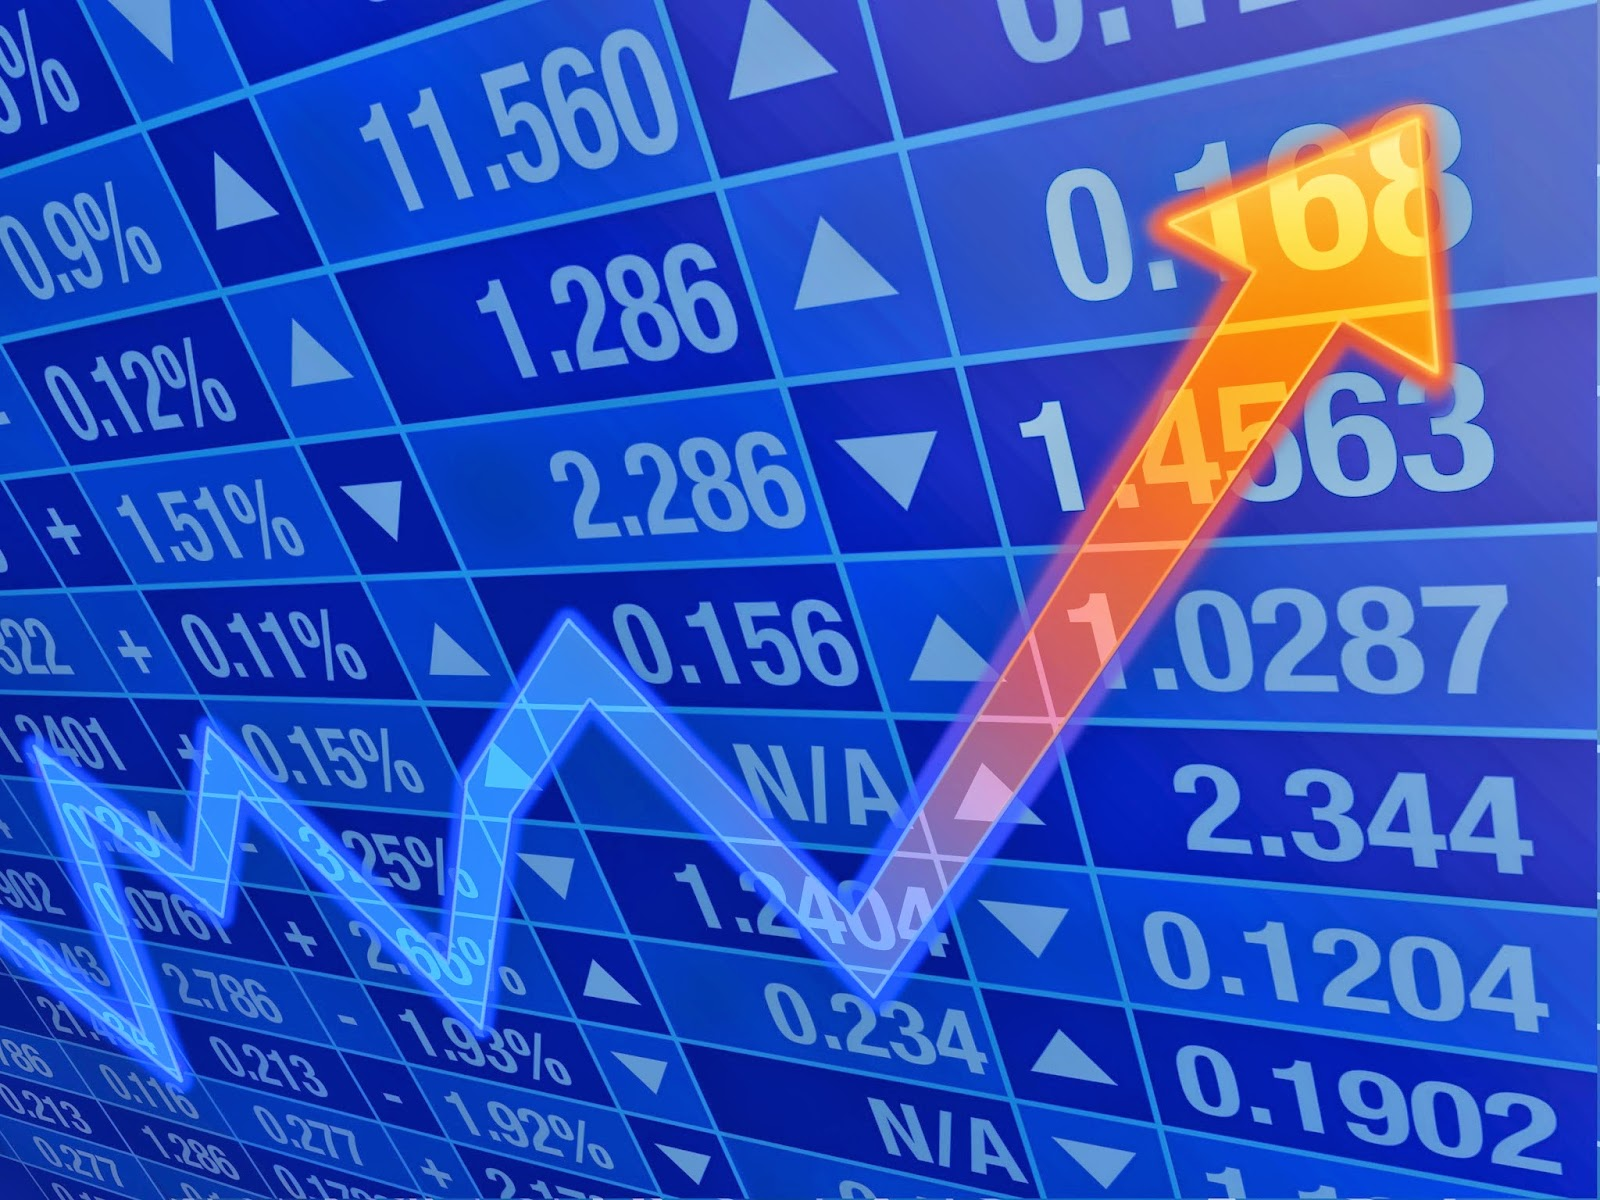 Bse Nse Live Stock Tips Bse Nse Stock Tips For The Day 31 03 2015